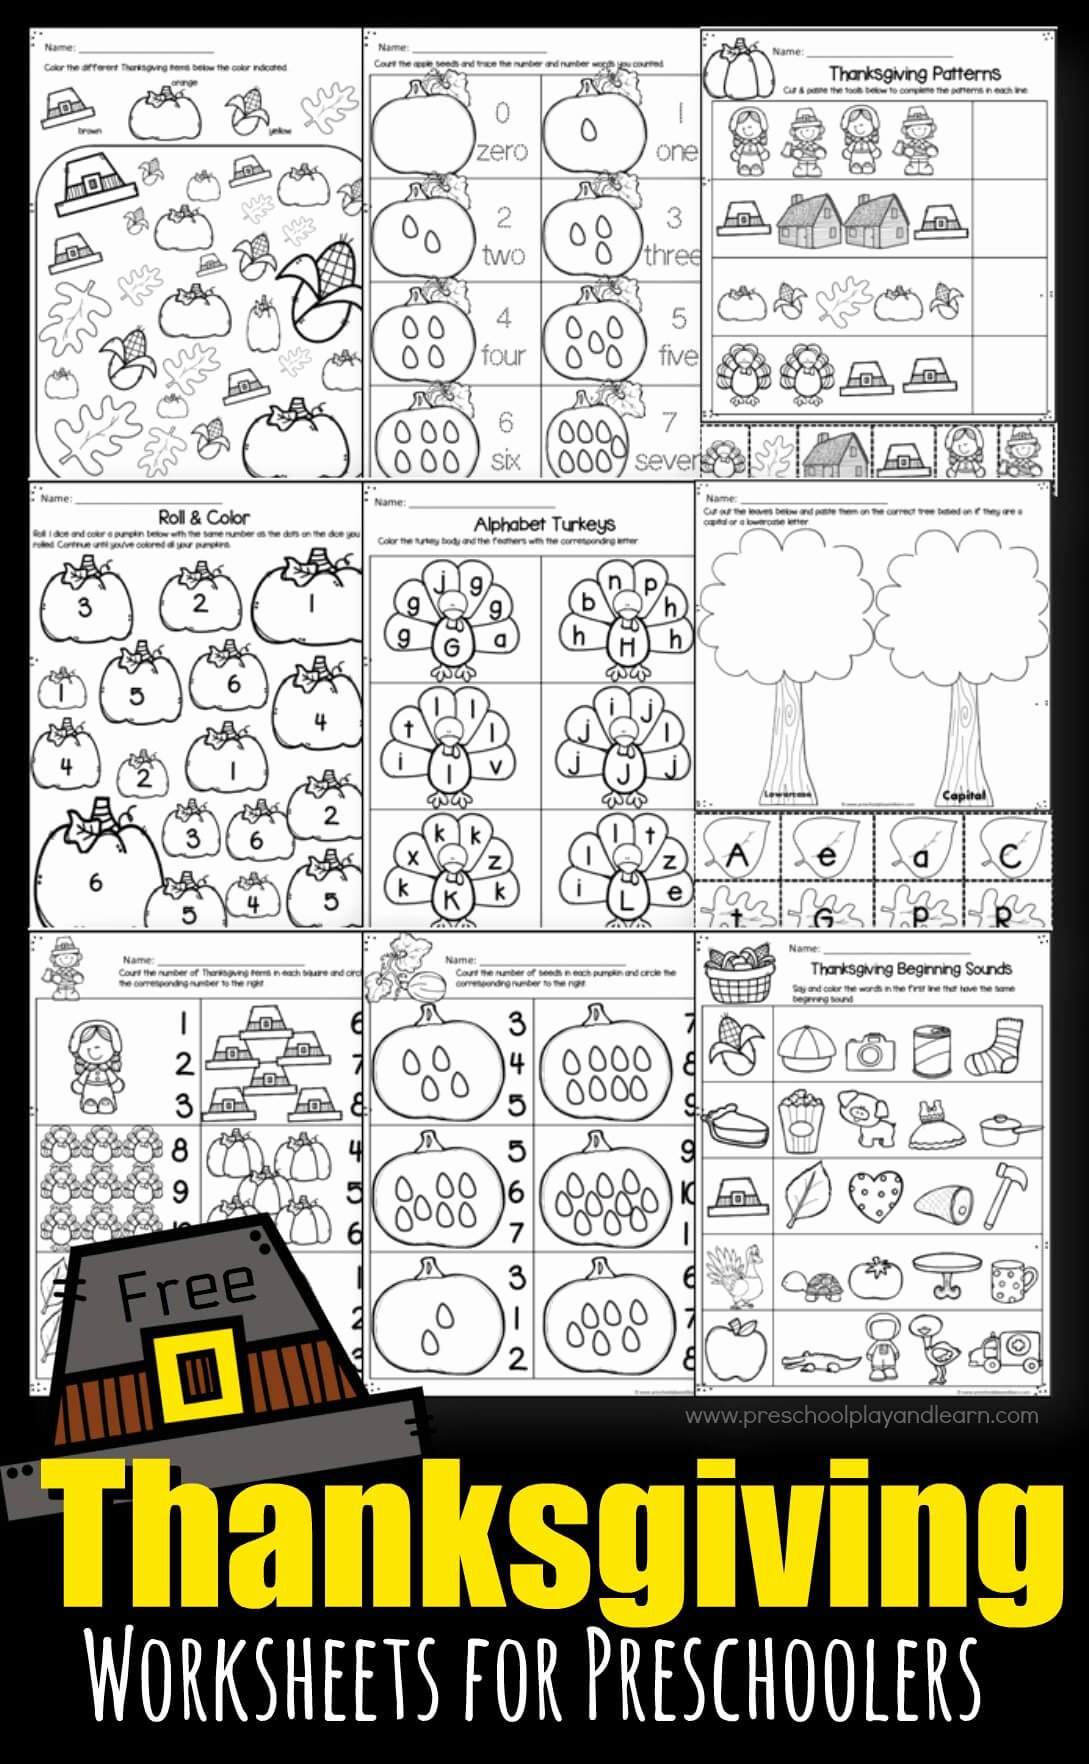 Thanksgiving Counting Worksheets for Preschoolers top Thanksgiving Worksheets for Preschoolers